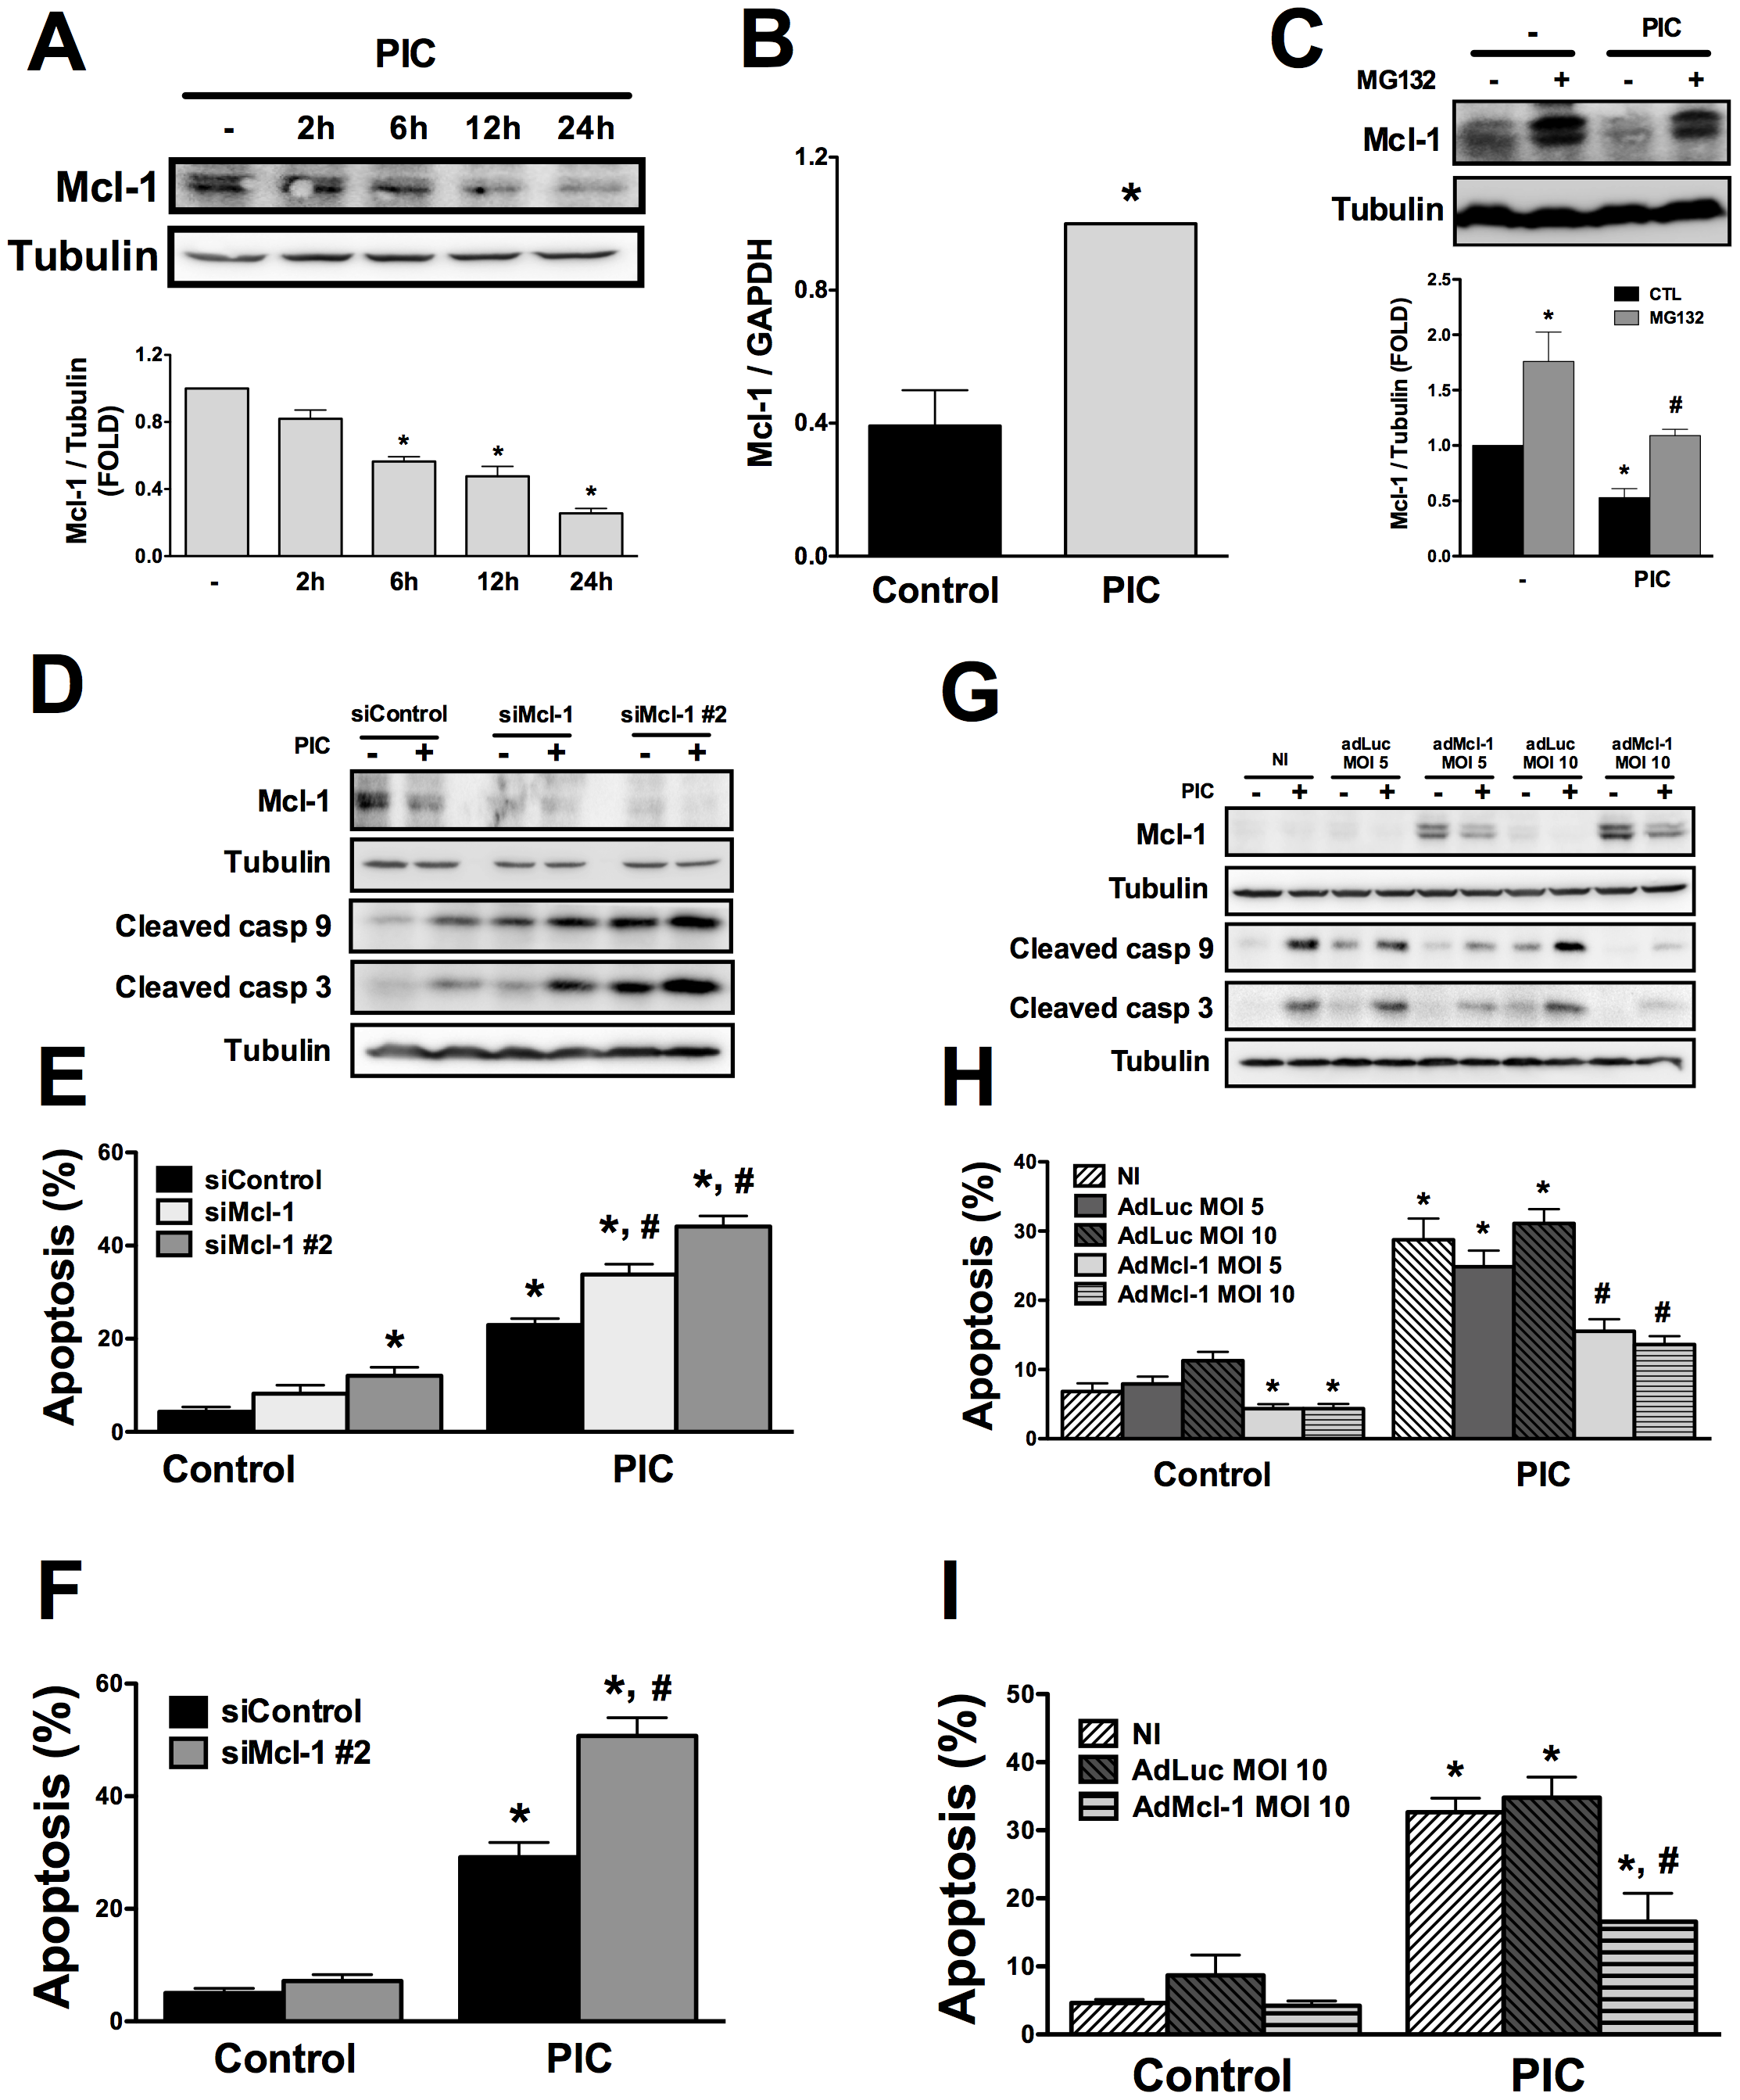 Mcl-1 protein expression is decreased by internal dsRNA and its modulation regulates beta cell apoptosis.